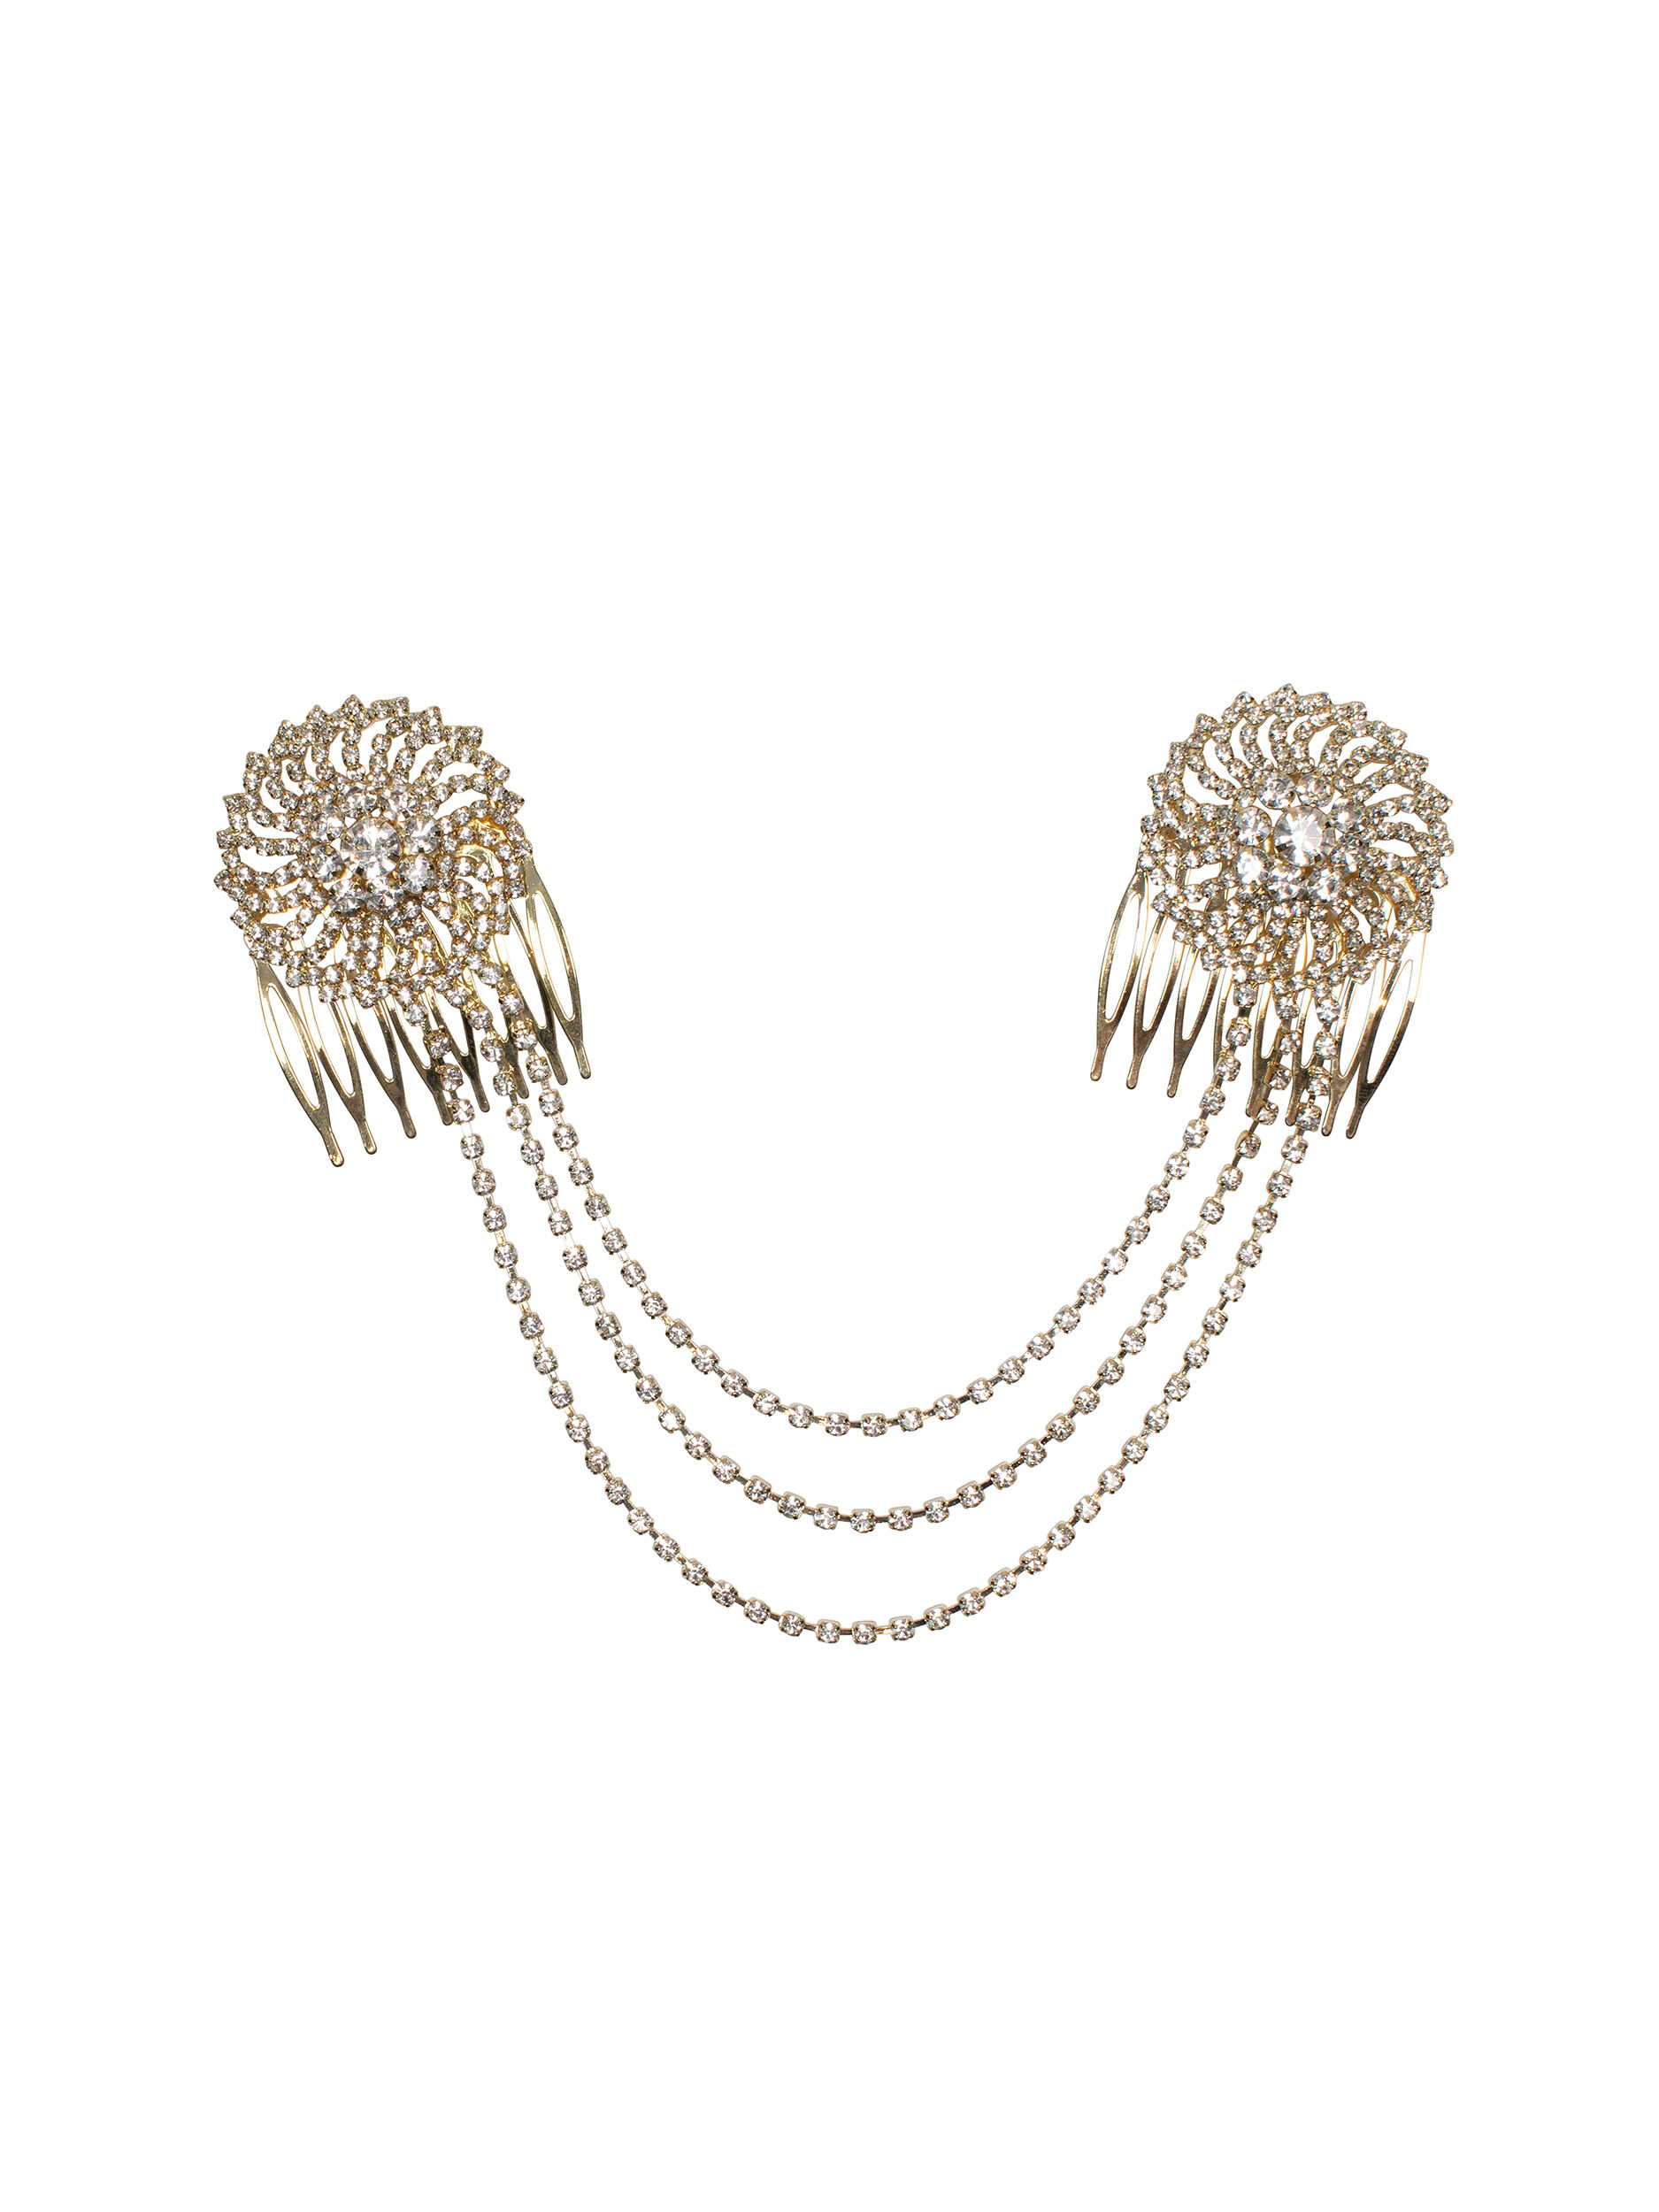 Beauty Hanging Hair Comb